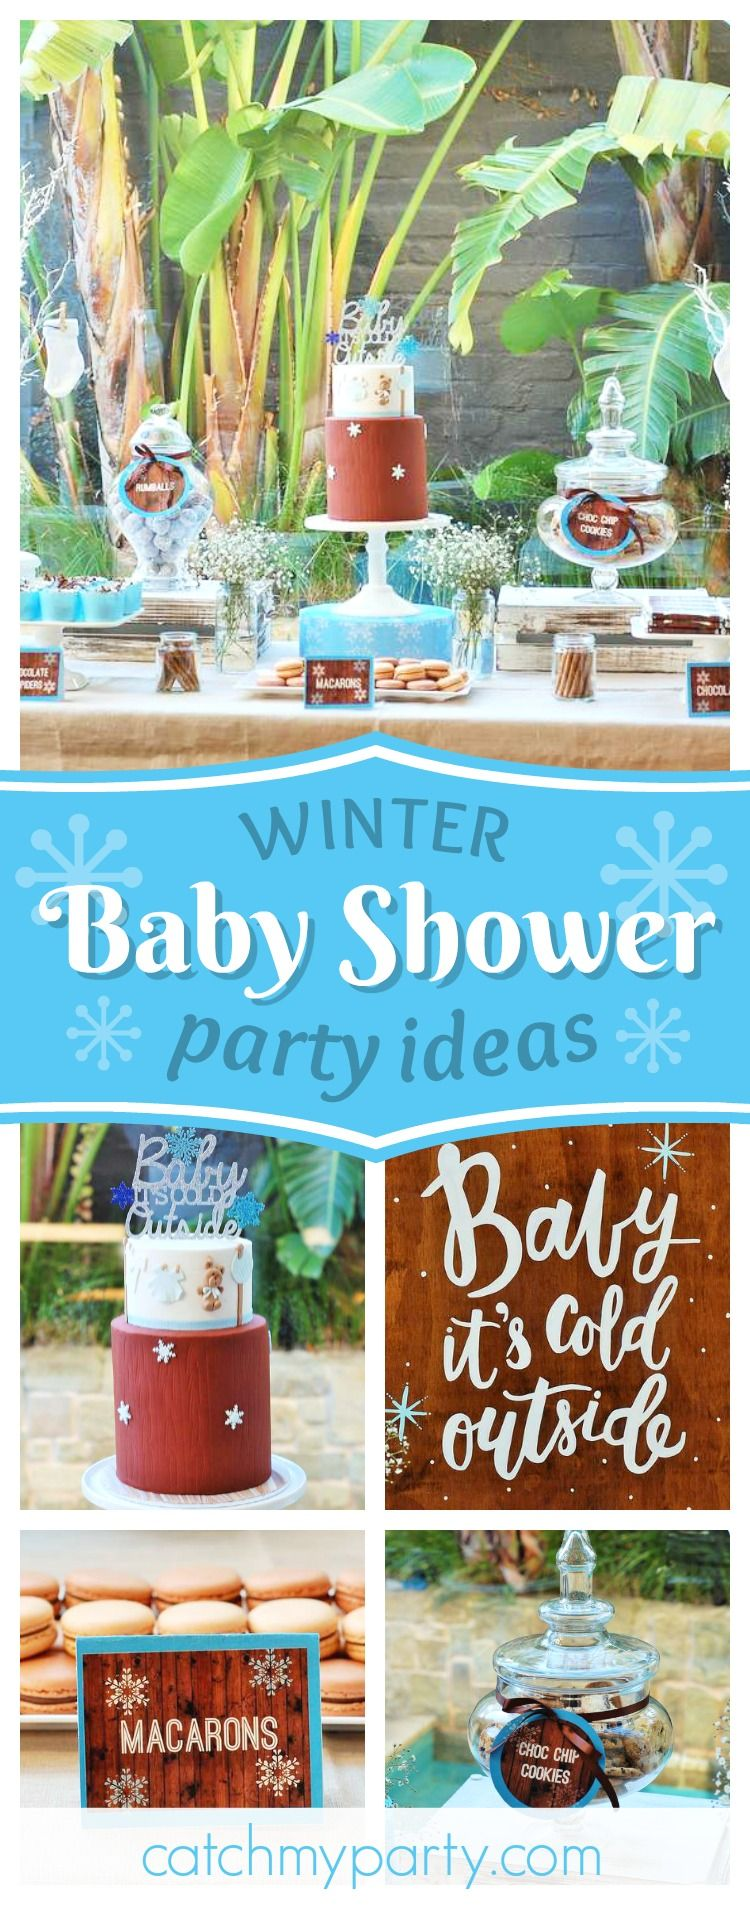 Don't miss this beautiful winter themed Baby Shower! The dessert table is stunni...